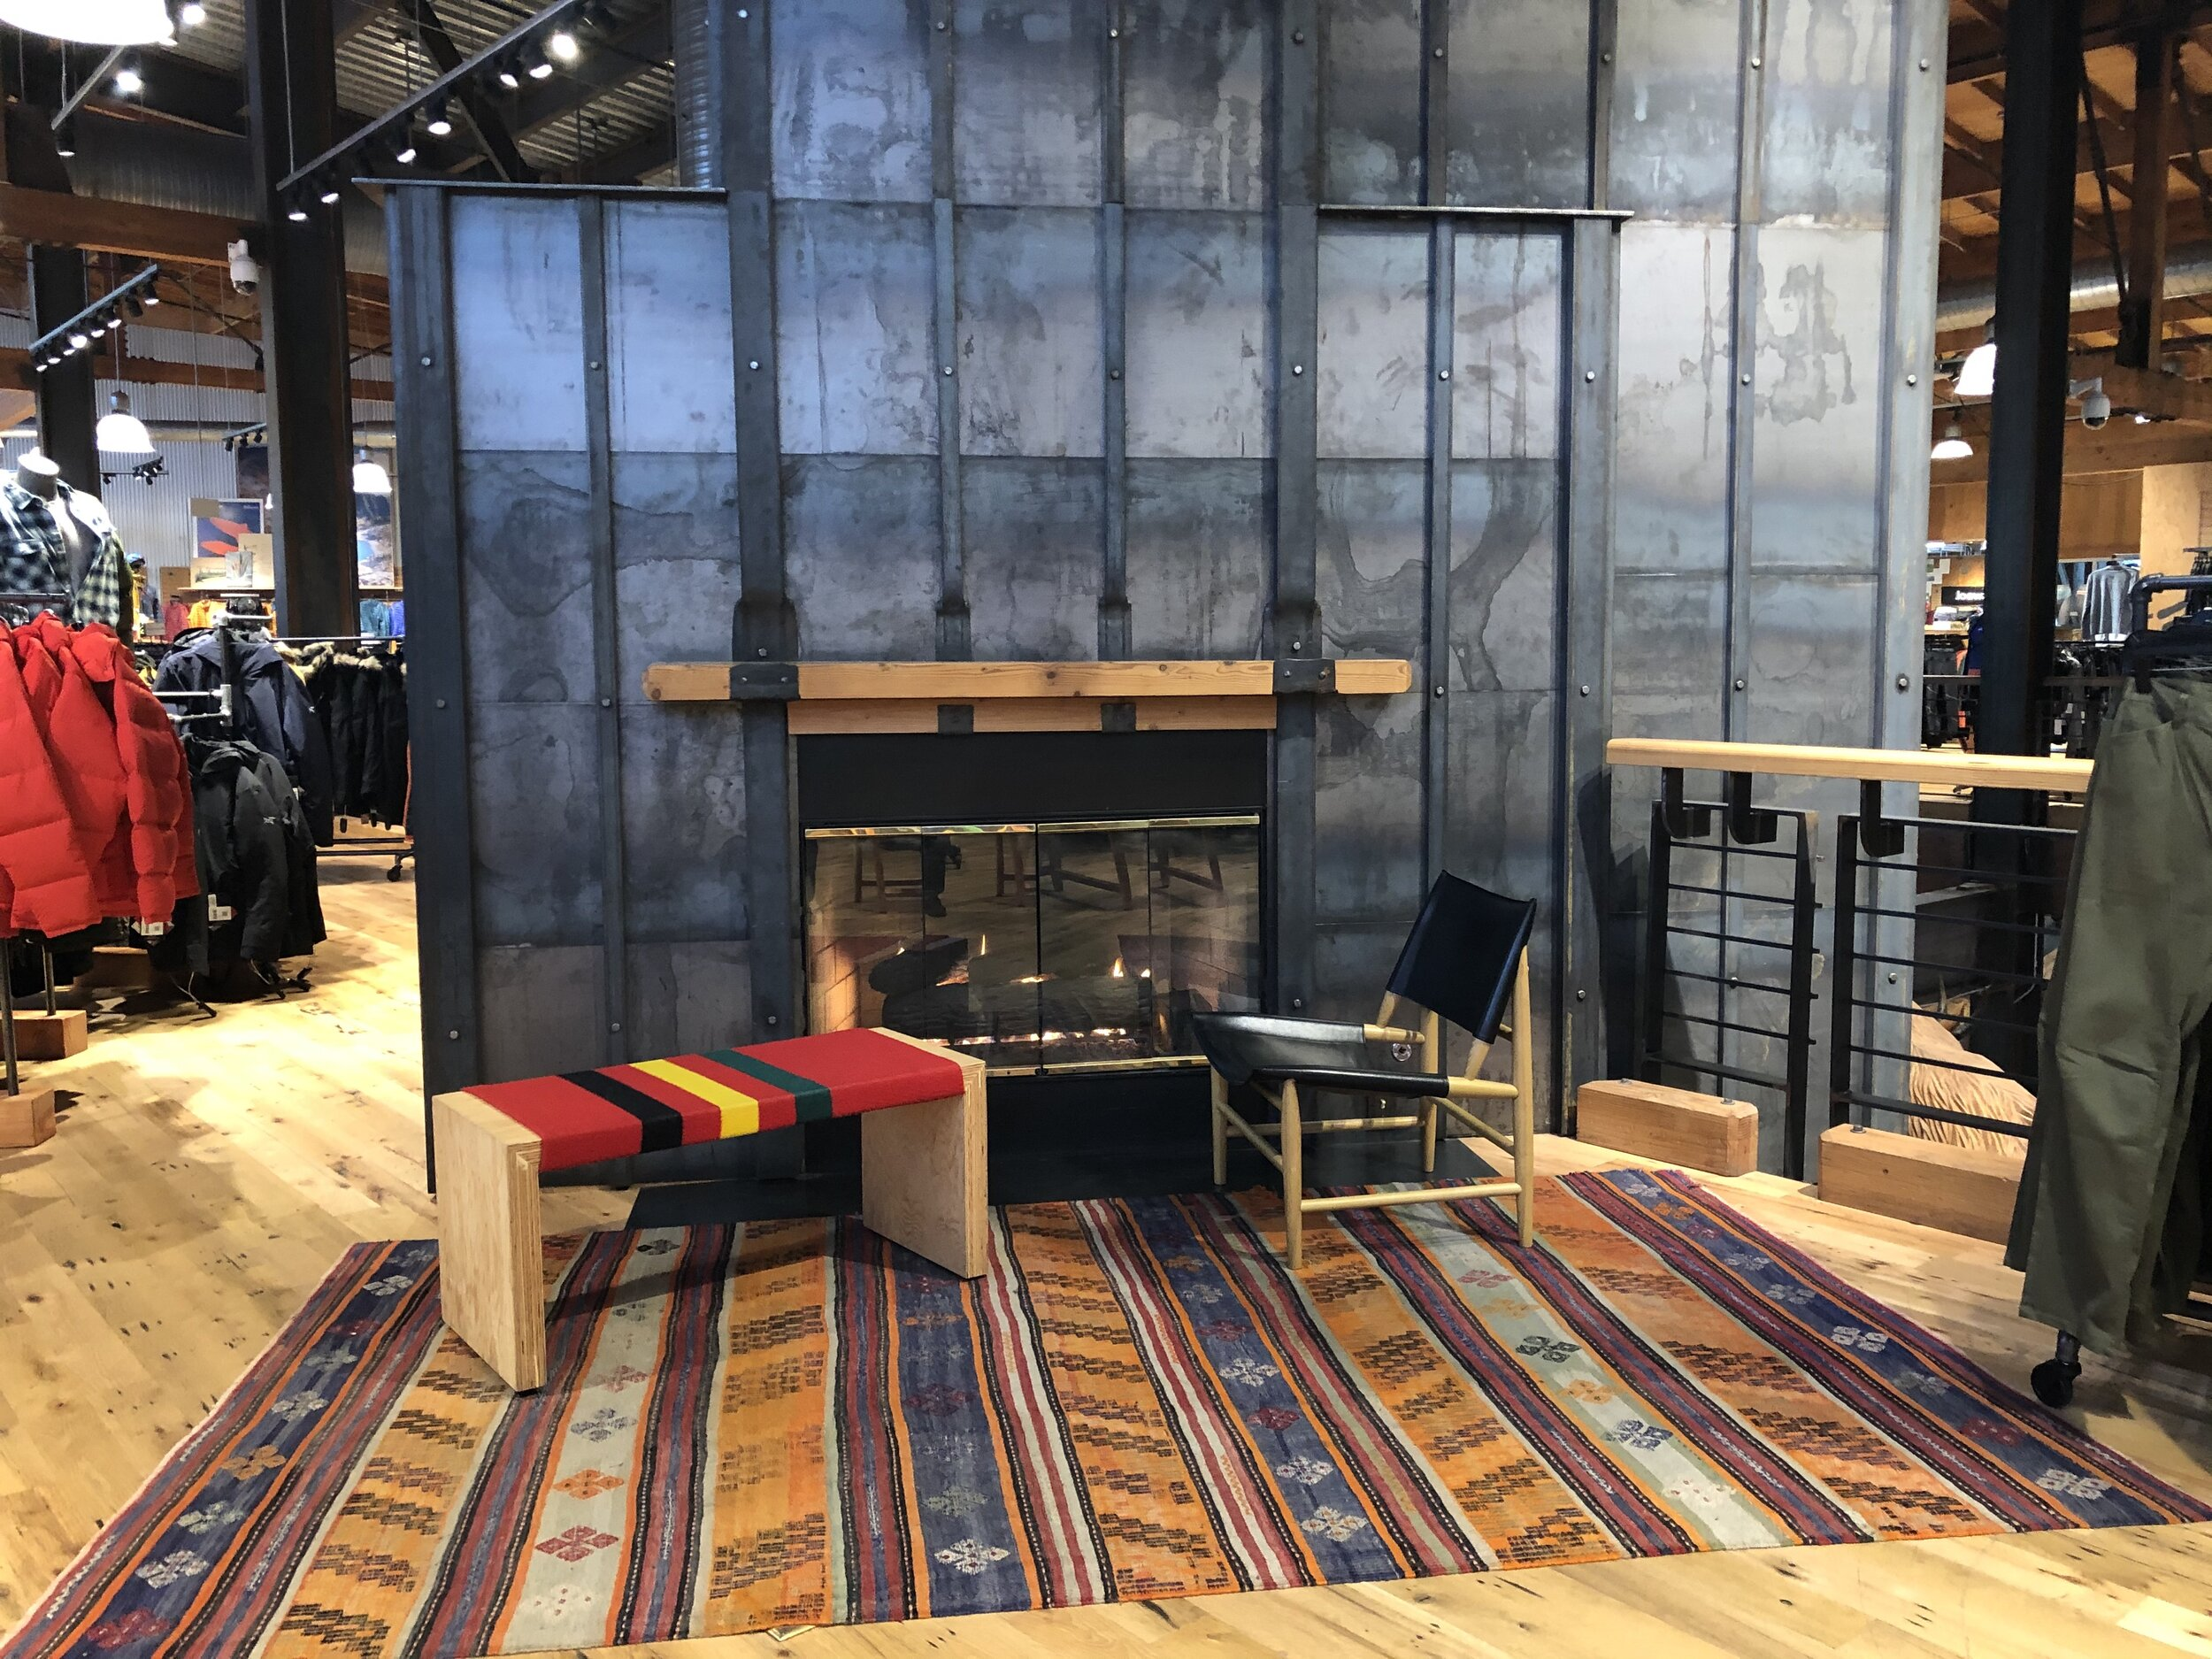 Upstairs fireplace at the REI flagship store in Seattle.